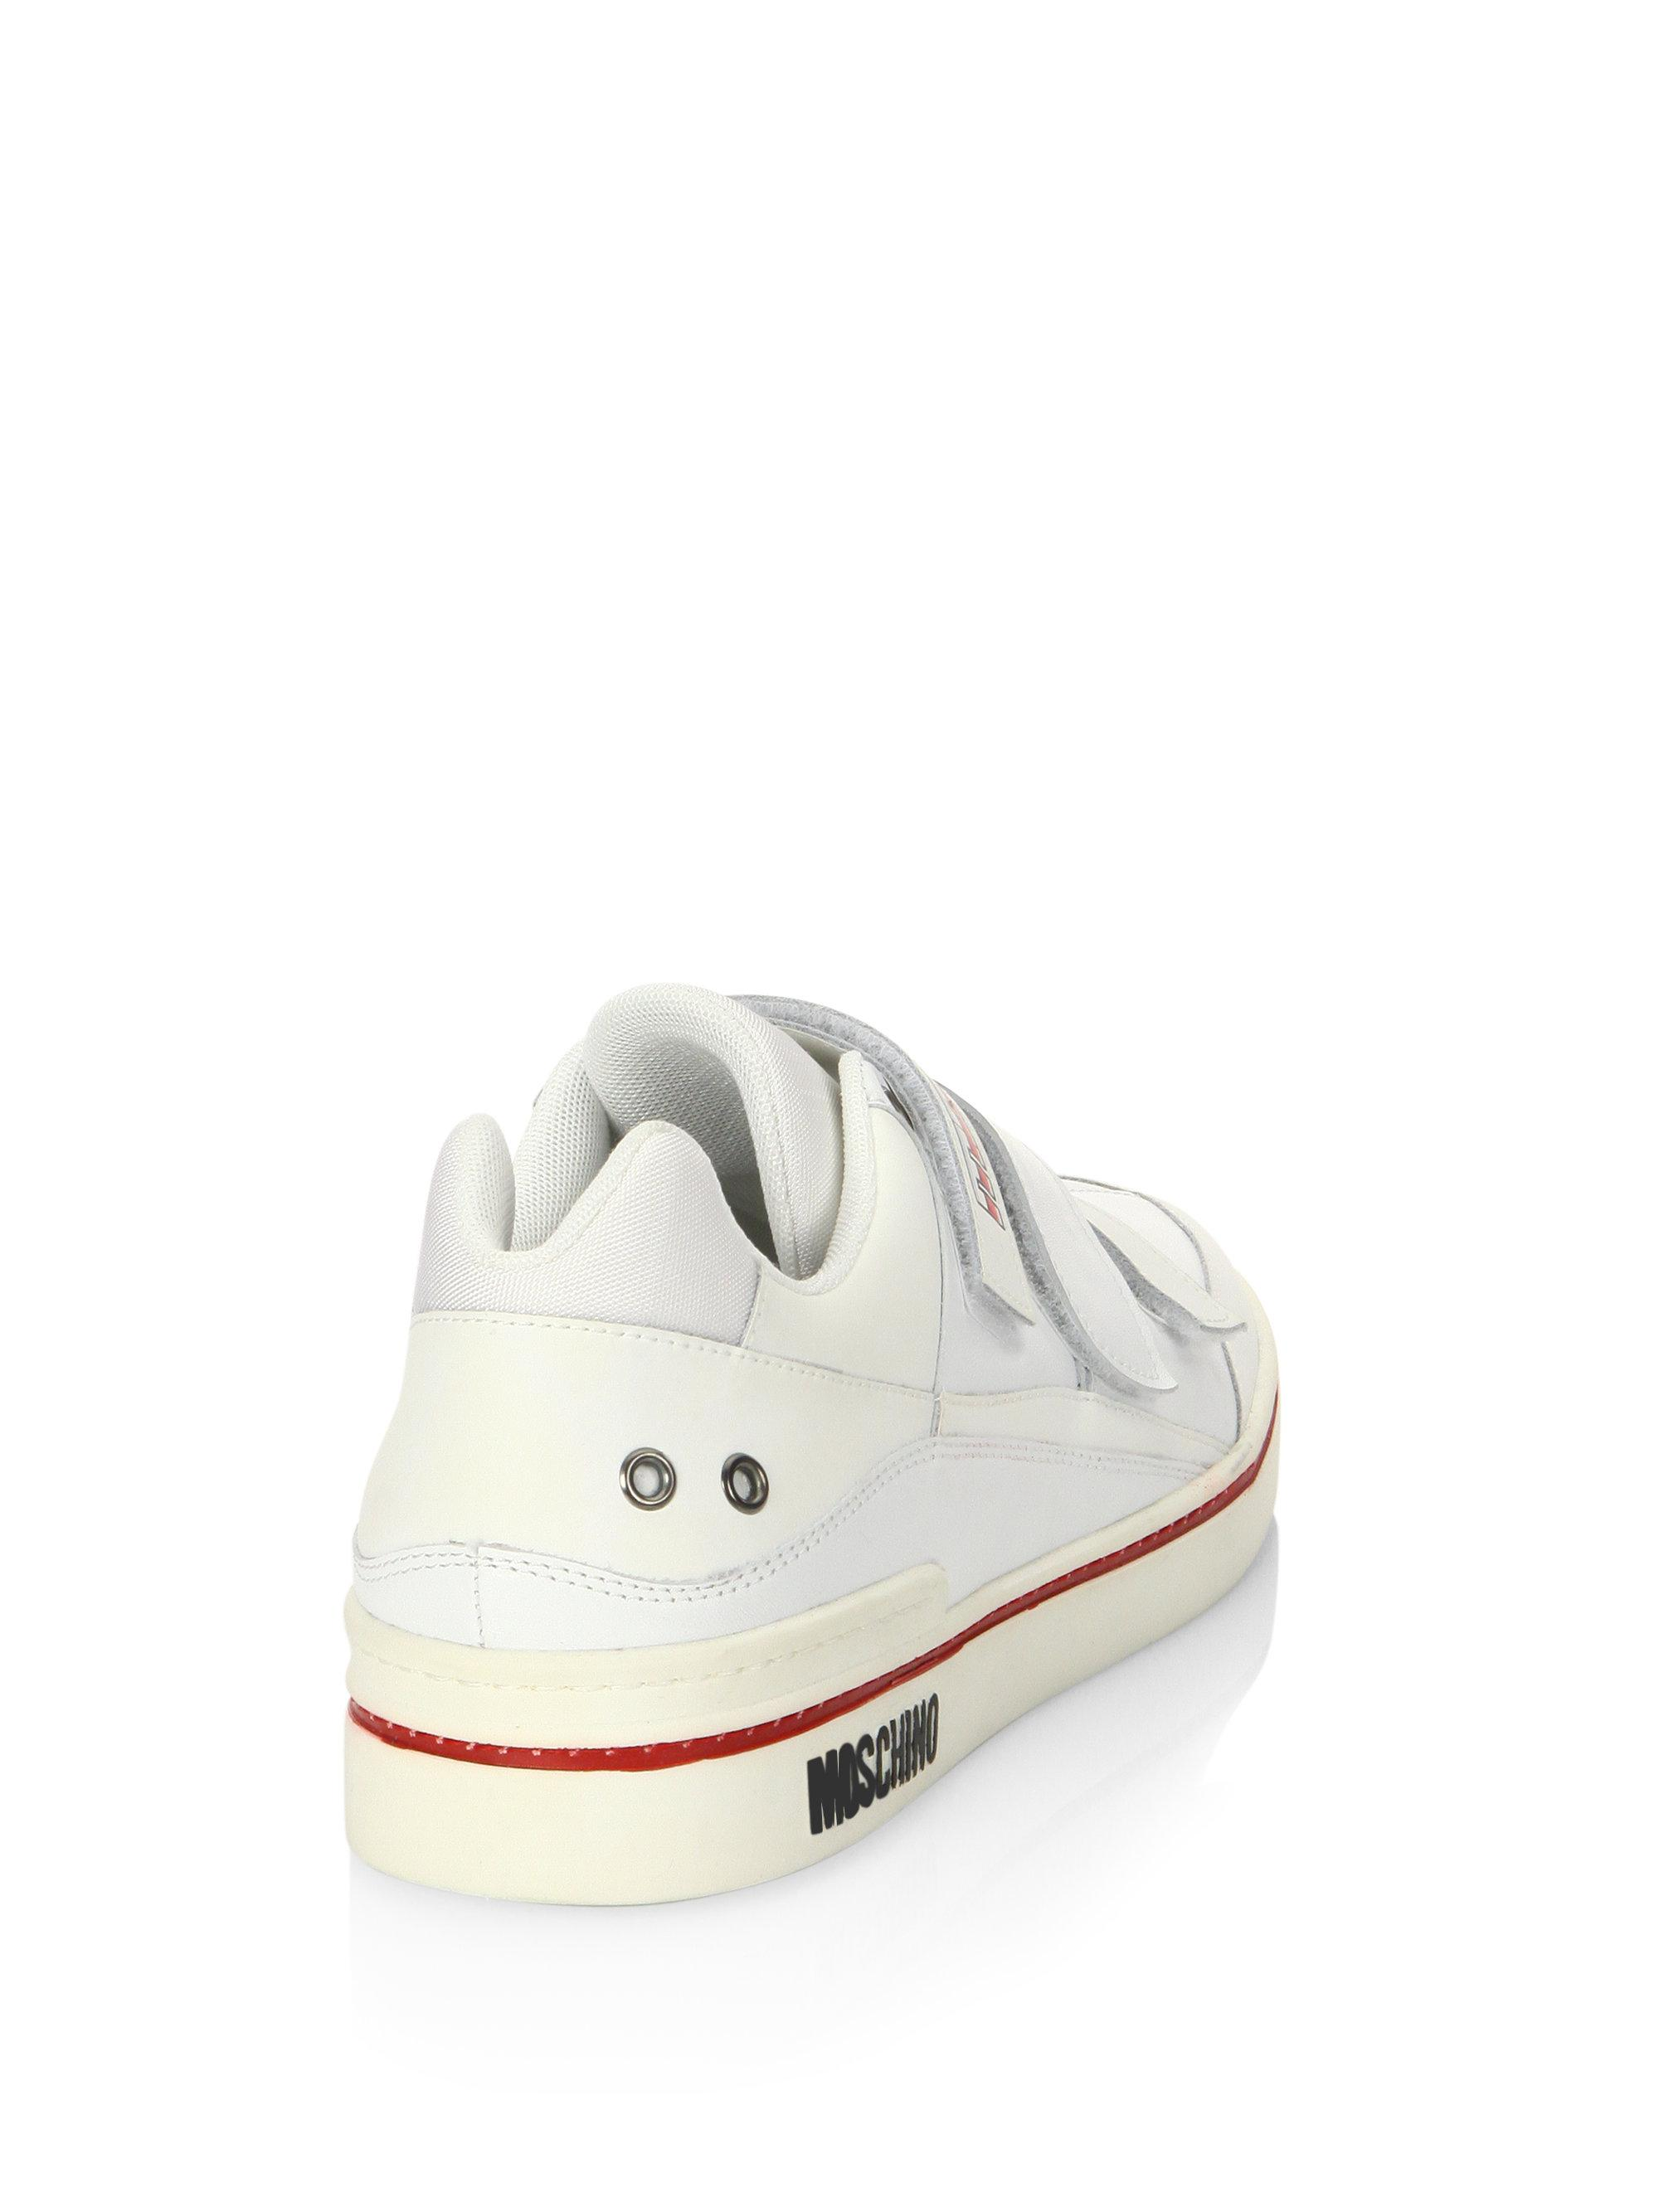 MoschinoLow-Top Grip-TapeSneakers agXHWVcA